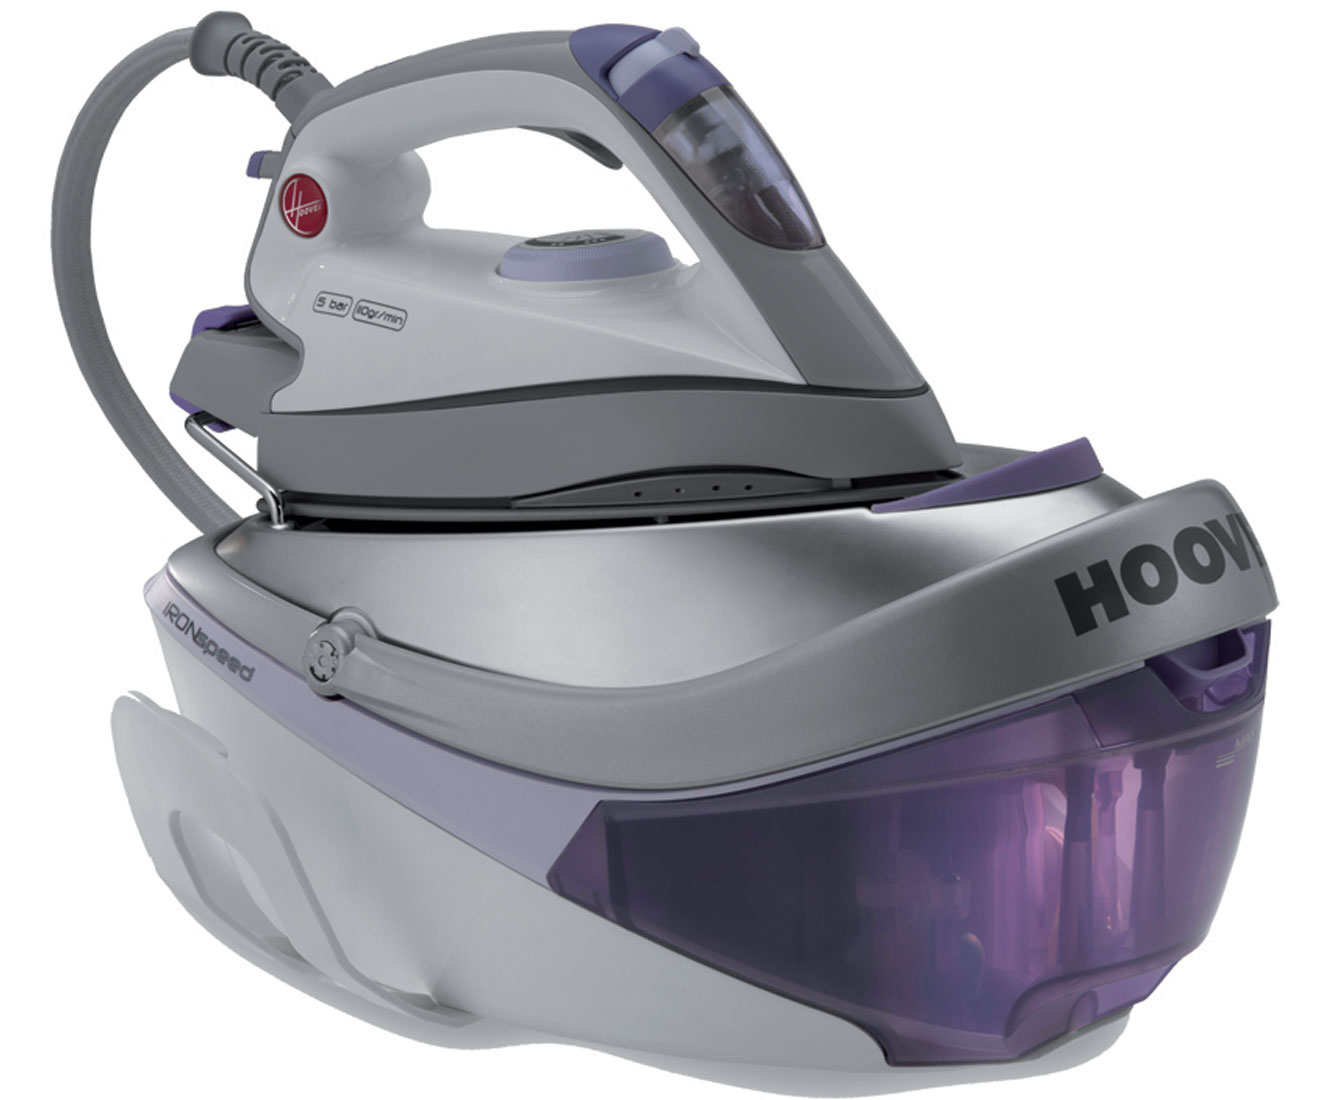 Hoover IronSpeed SRD4108 Steam Generator Iron